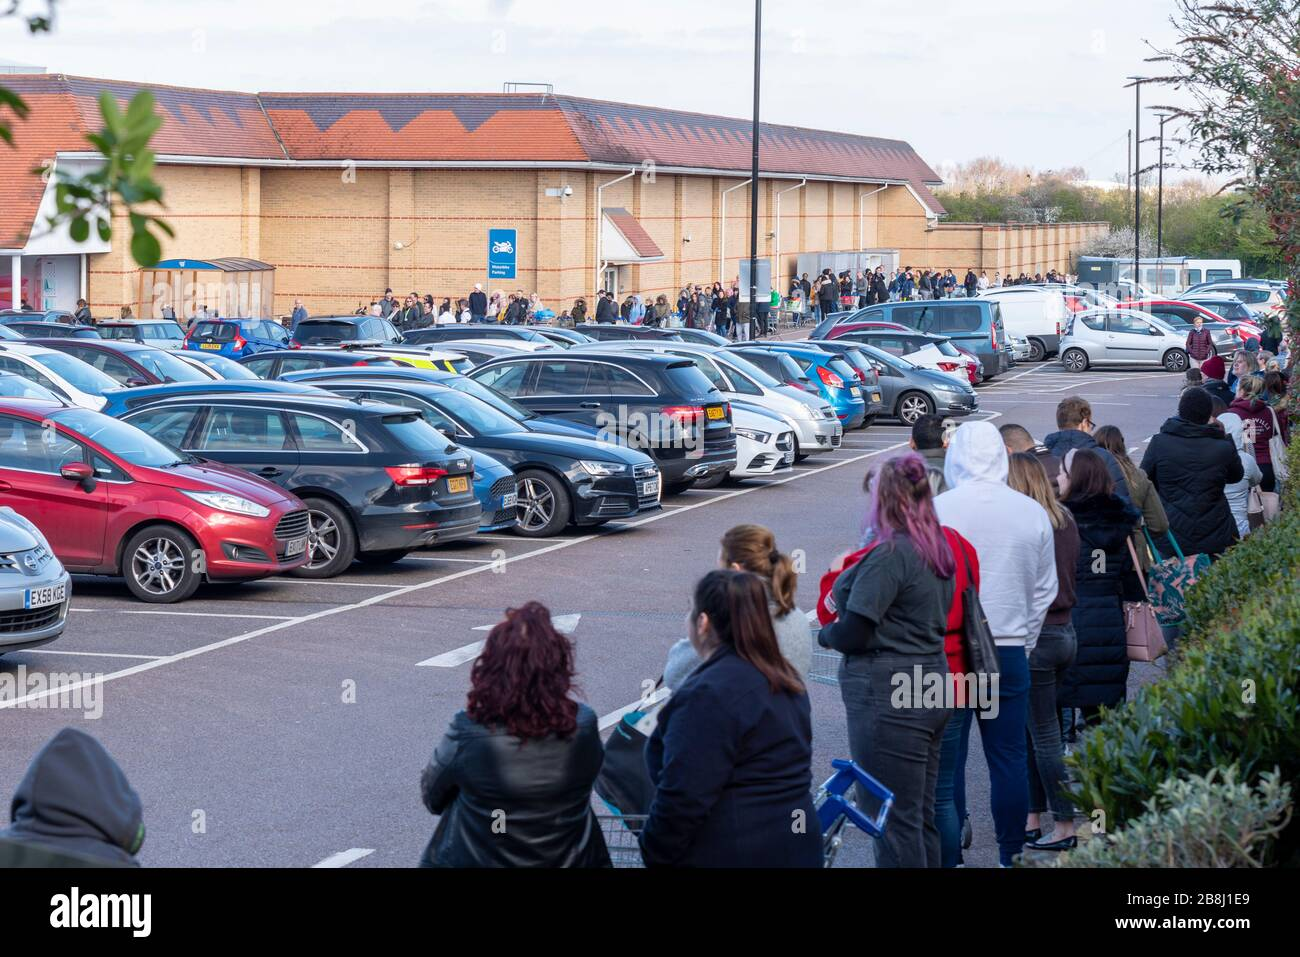 southend-on-sea-essex-uk-22nd-march-2020-tesco-extra-on-the-a127-prince-avenue-southend-on-sea-has-attracted-huge-numbers-of-shoppers-who-have-created-a-queue-snaking-around-the-car-park-in-response-to-the-covid-19-coronavirus-pandemic-security-staff-are-checking-that-priority-shoppers-are-admitted-only-in-the-first-hour-of-trading-people-are-standing-close-together-with-little-thought-to-social-distancing-2B8J1E9.jpg